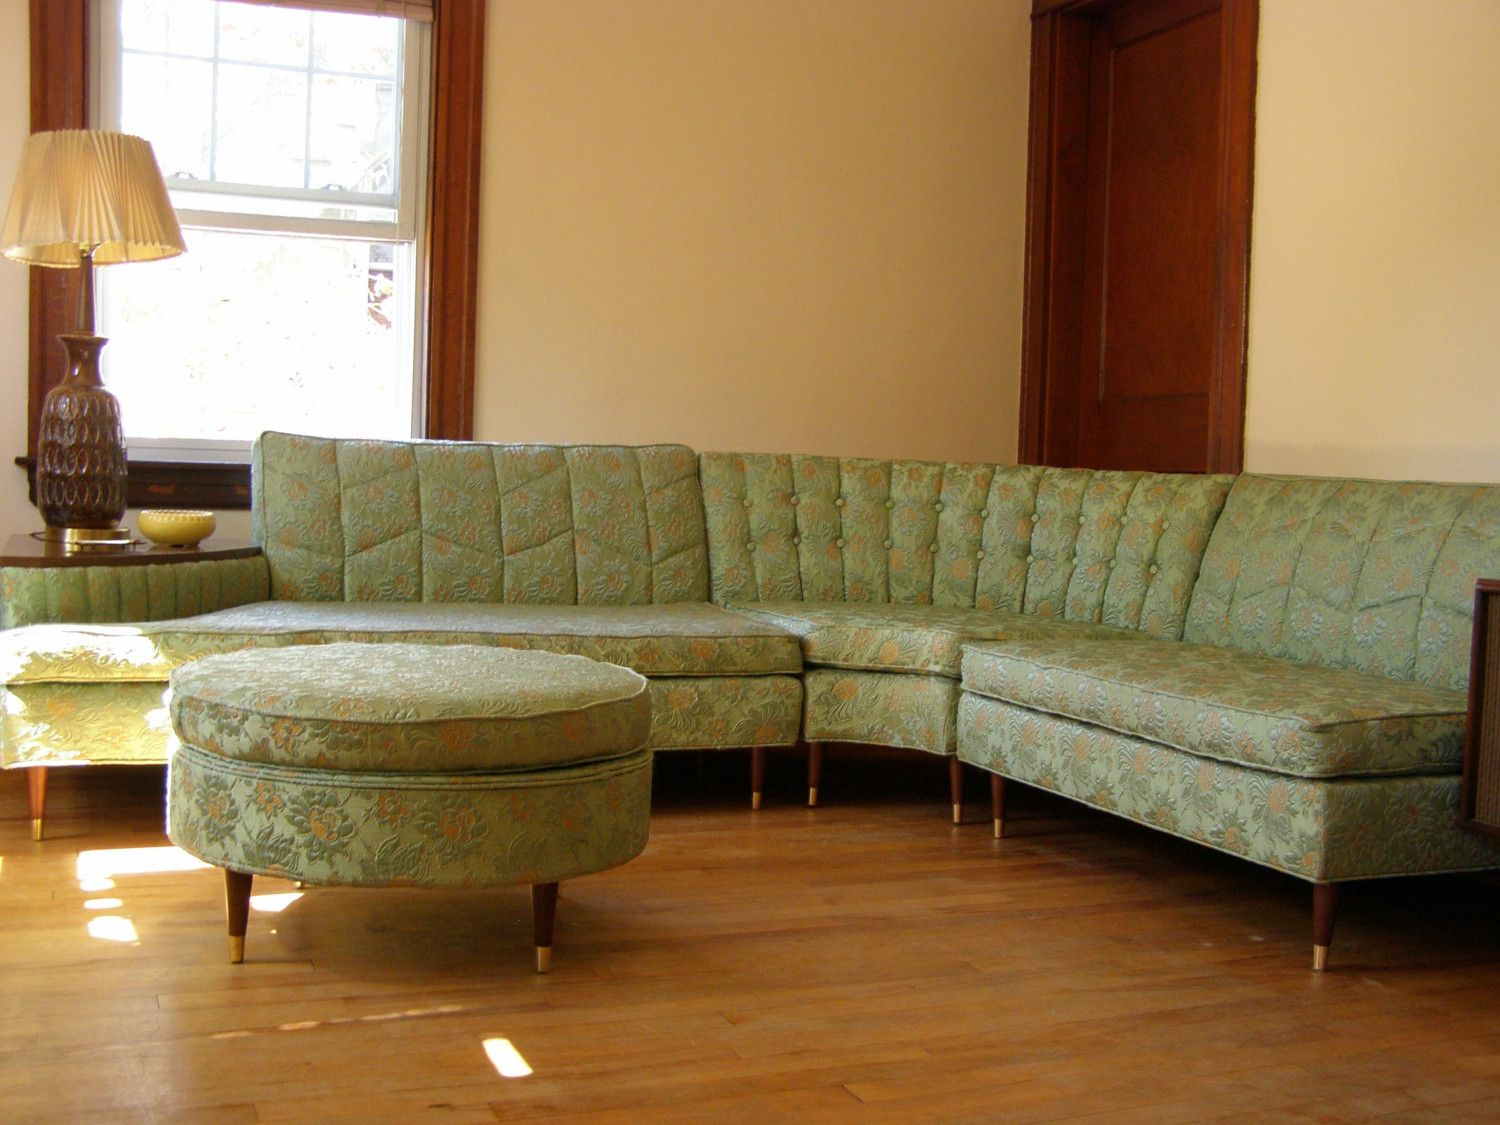 Retro Couches New Years Vintage Sectional Sofa With Built By Redeyevintage